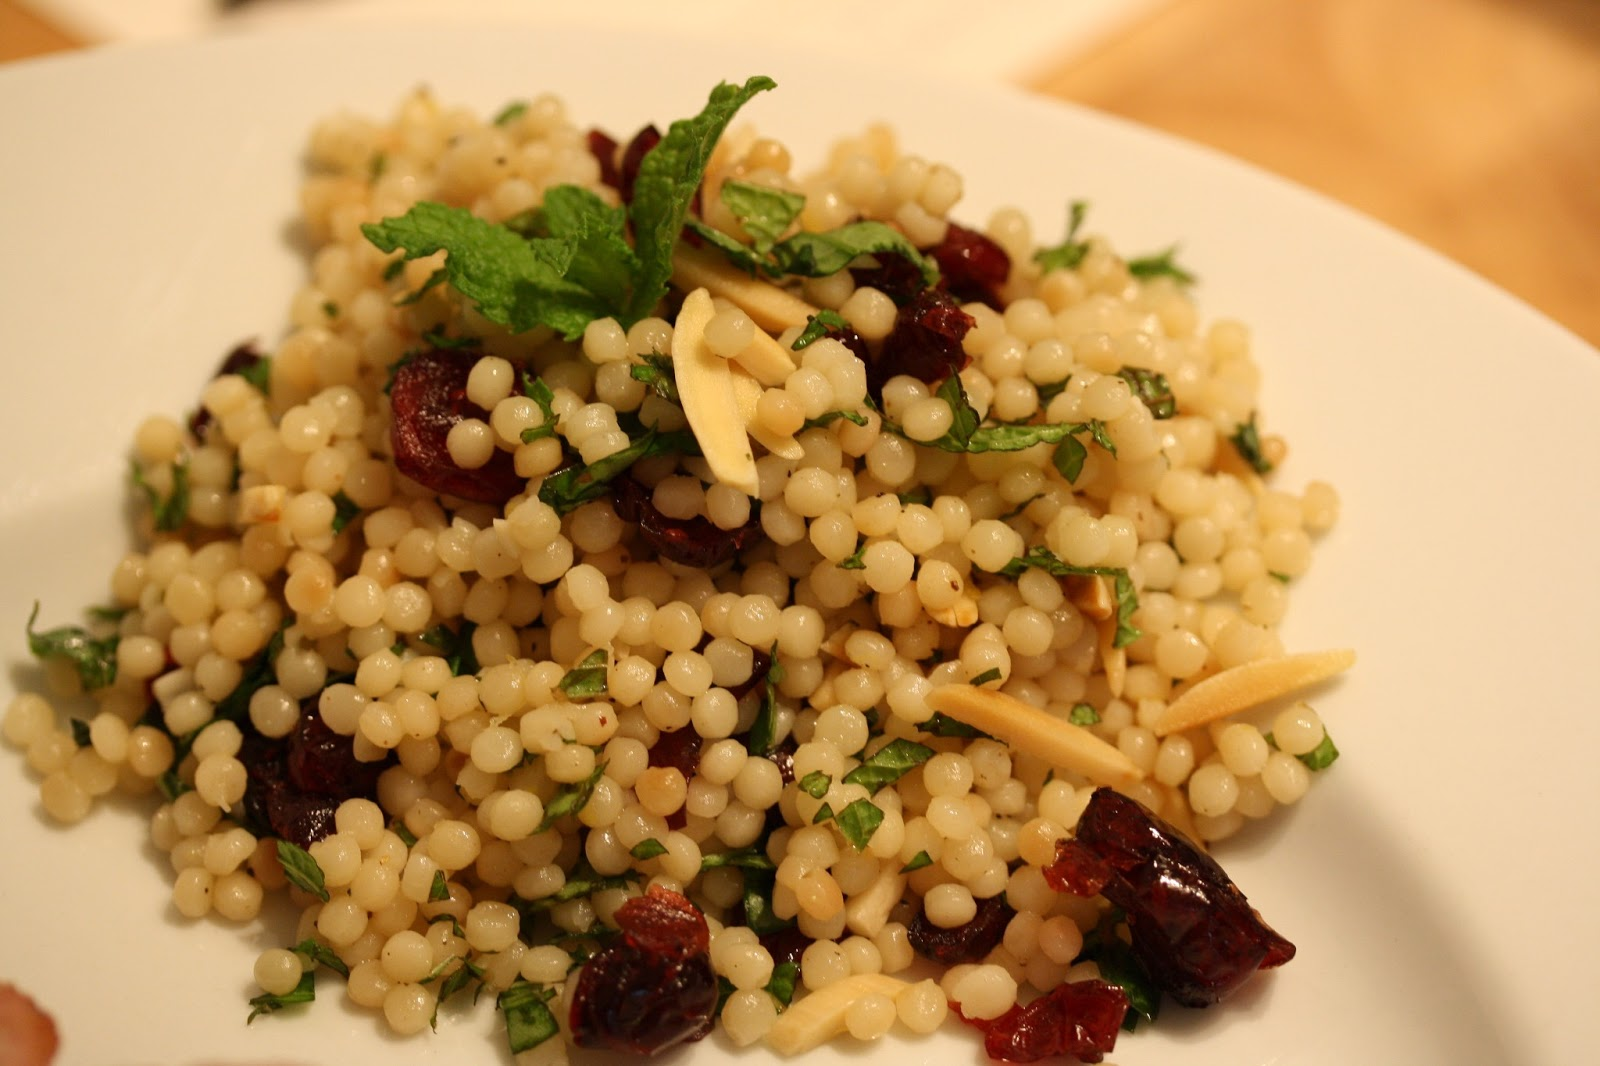 Hot Dinner Happy Home: Mediterranean Couscous Salad